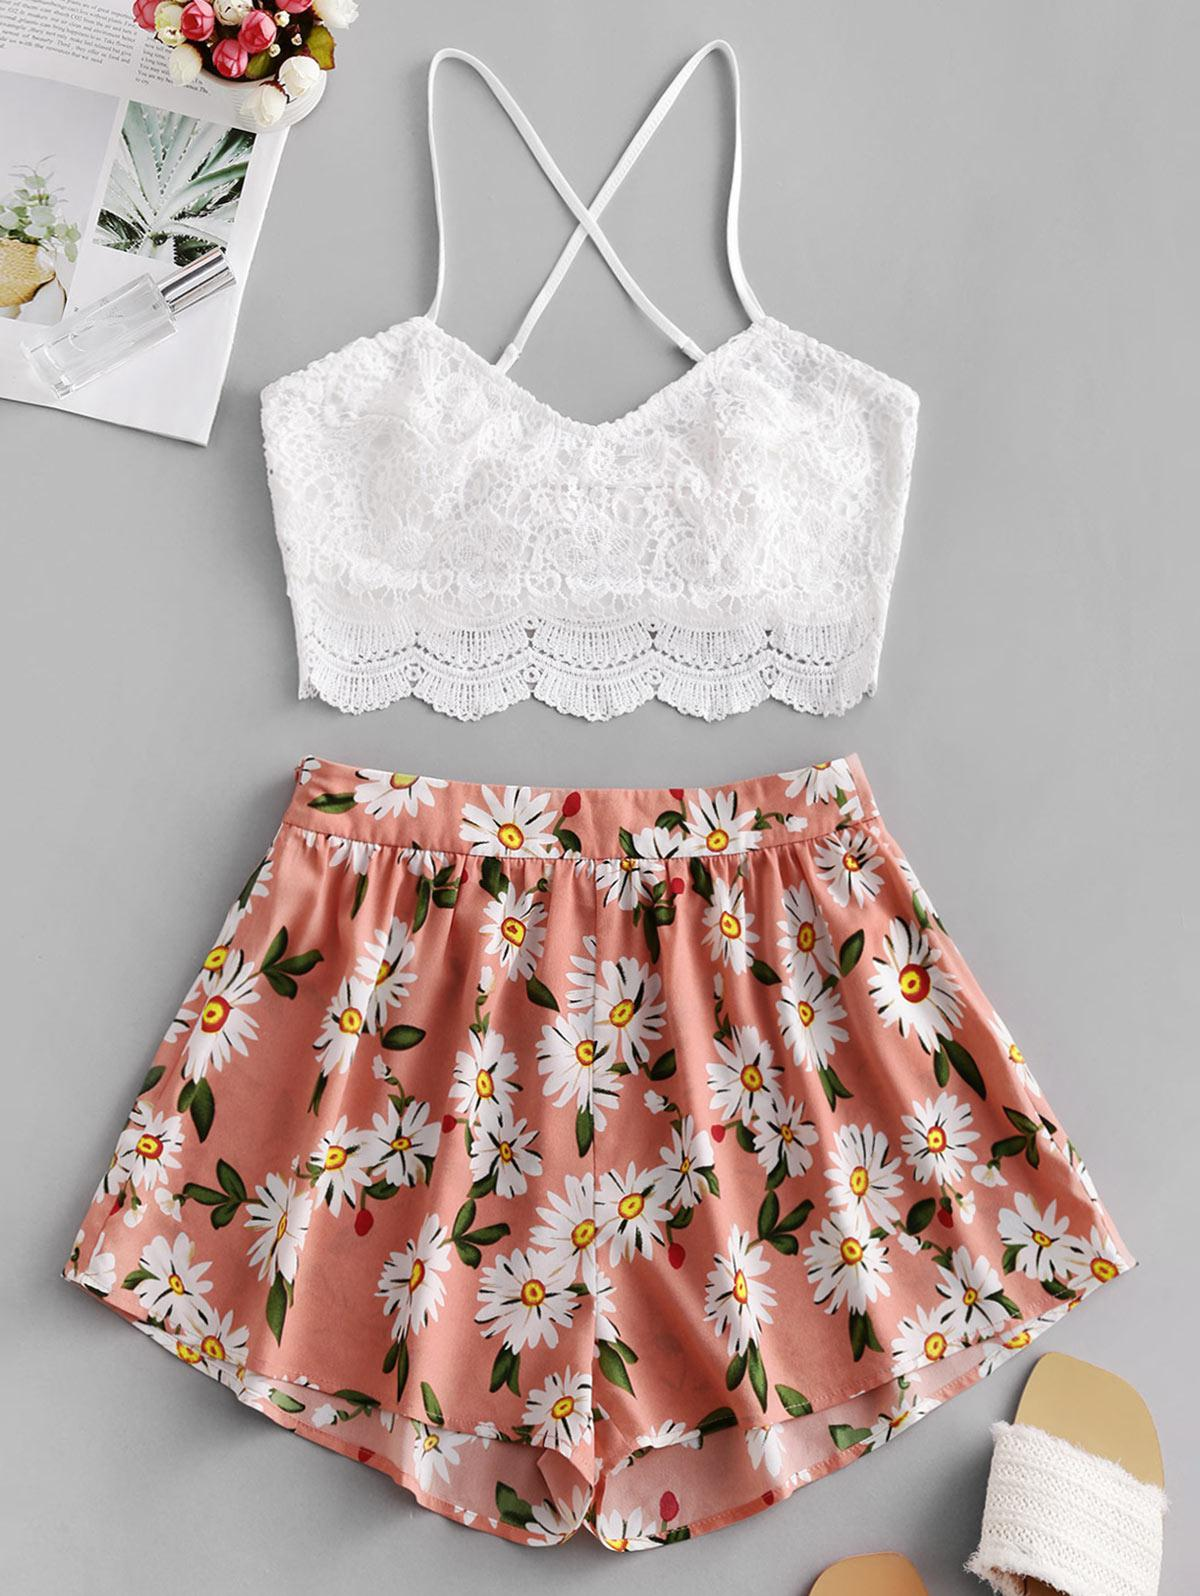 ZAFUL Flower Print Guipure Lace Insert Tie Back Shorts Set